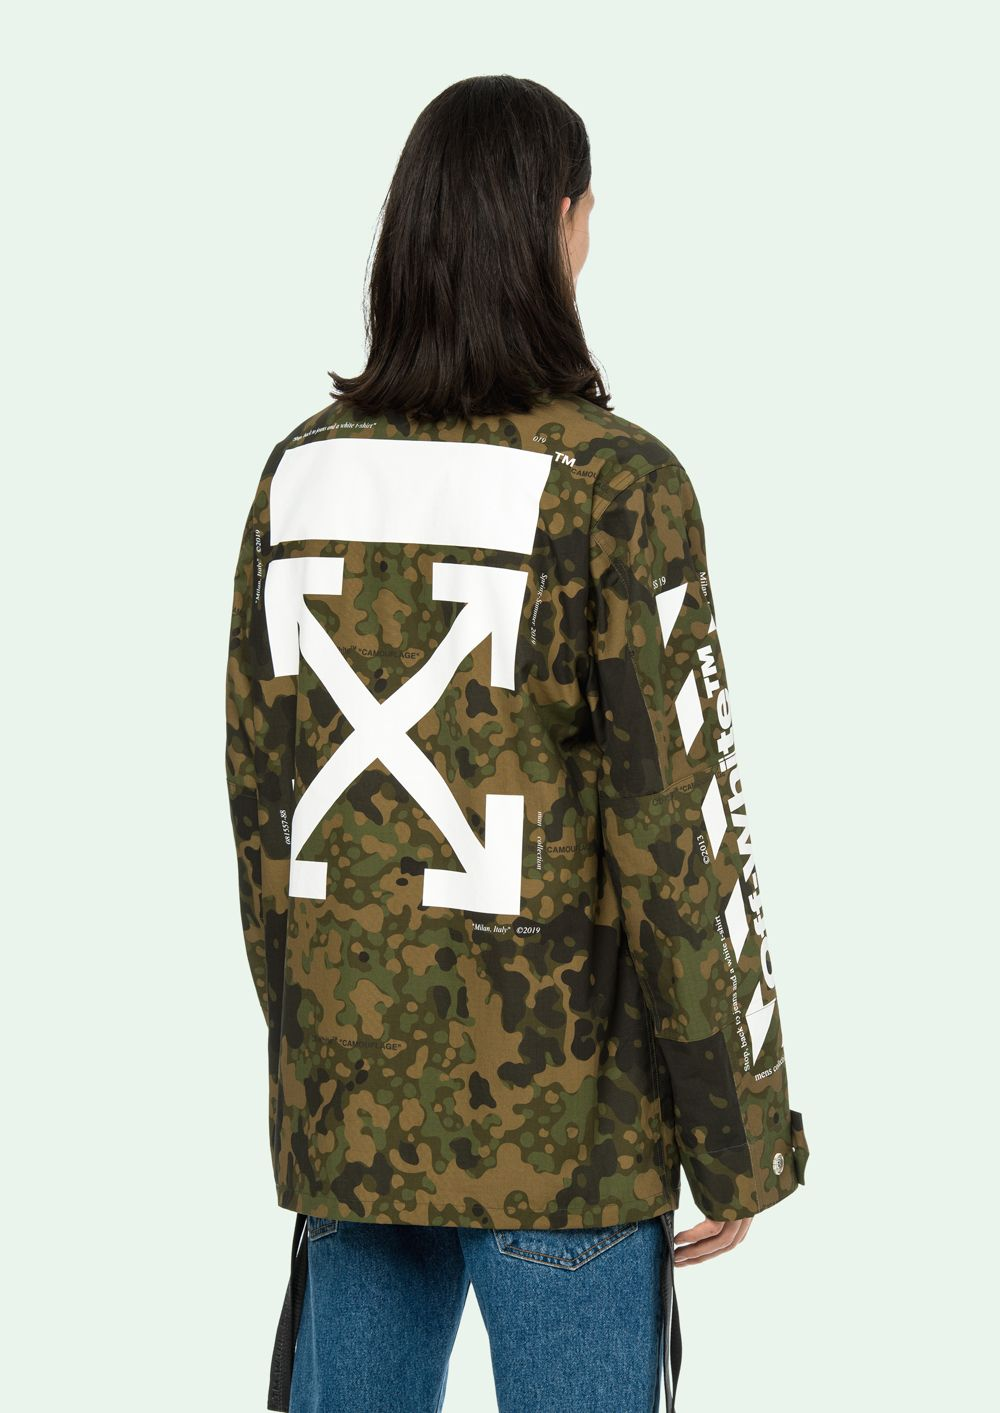 Off White Field Jackets Offwhite Menswear Field Jacket Clothes [ 1413 x 1000 Pixel ]